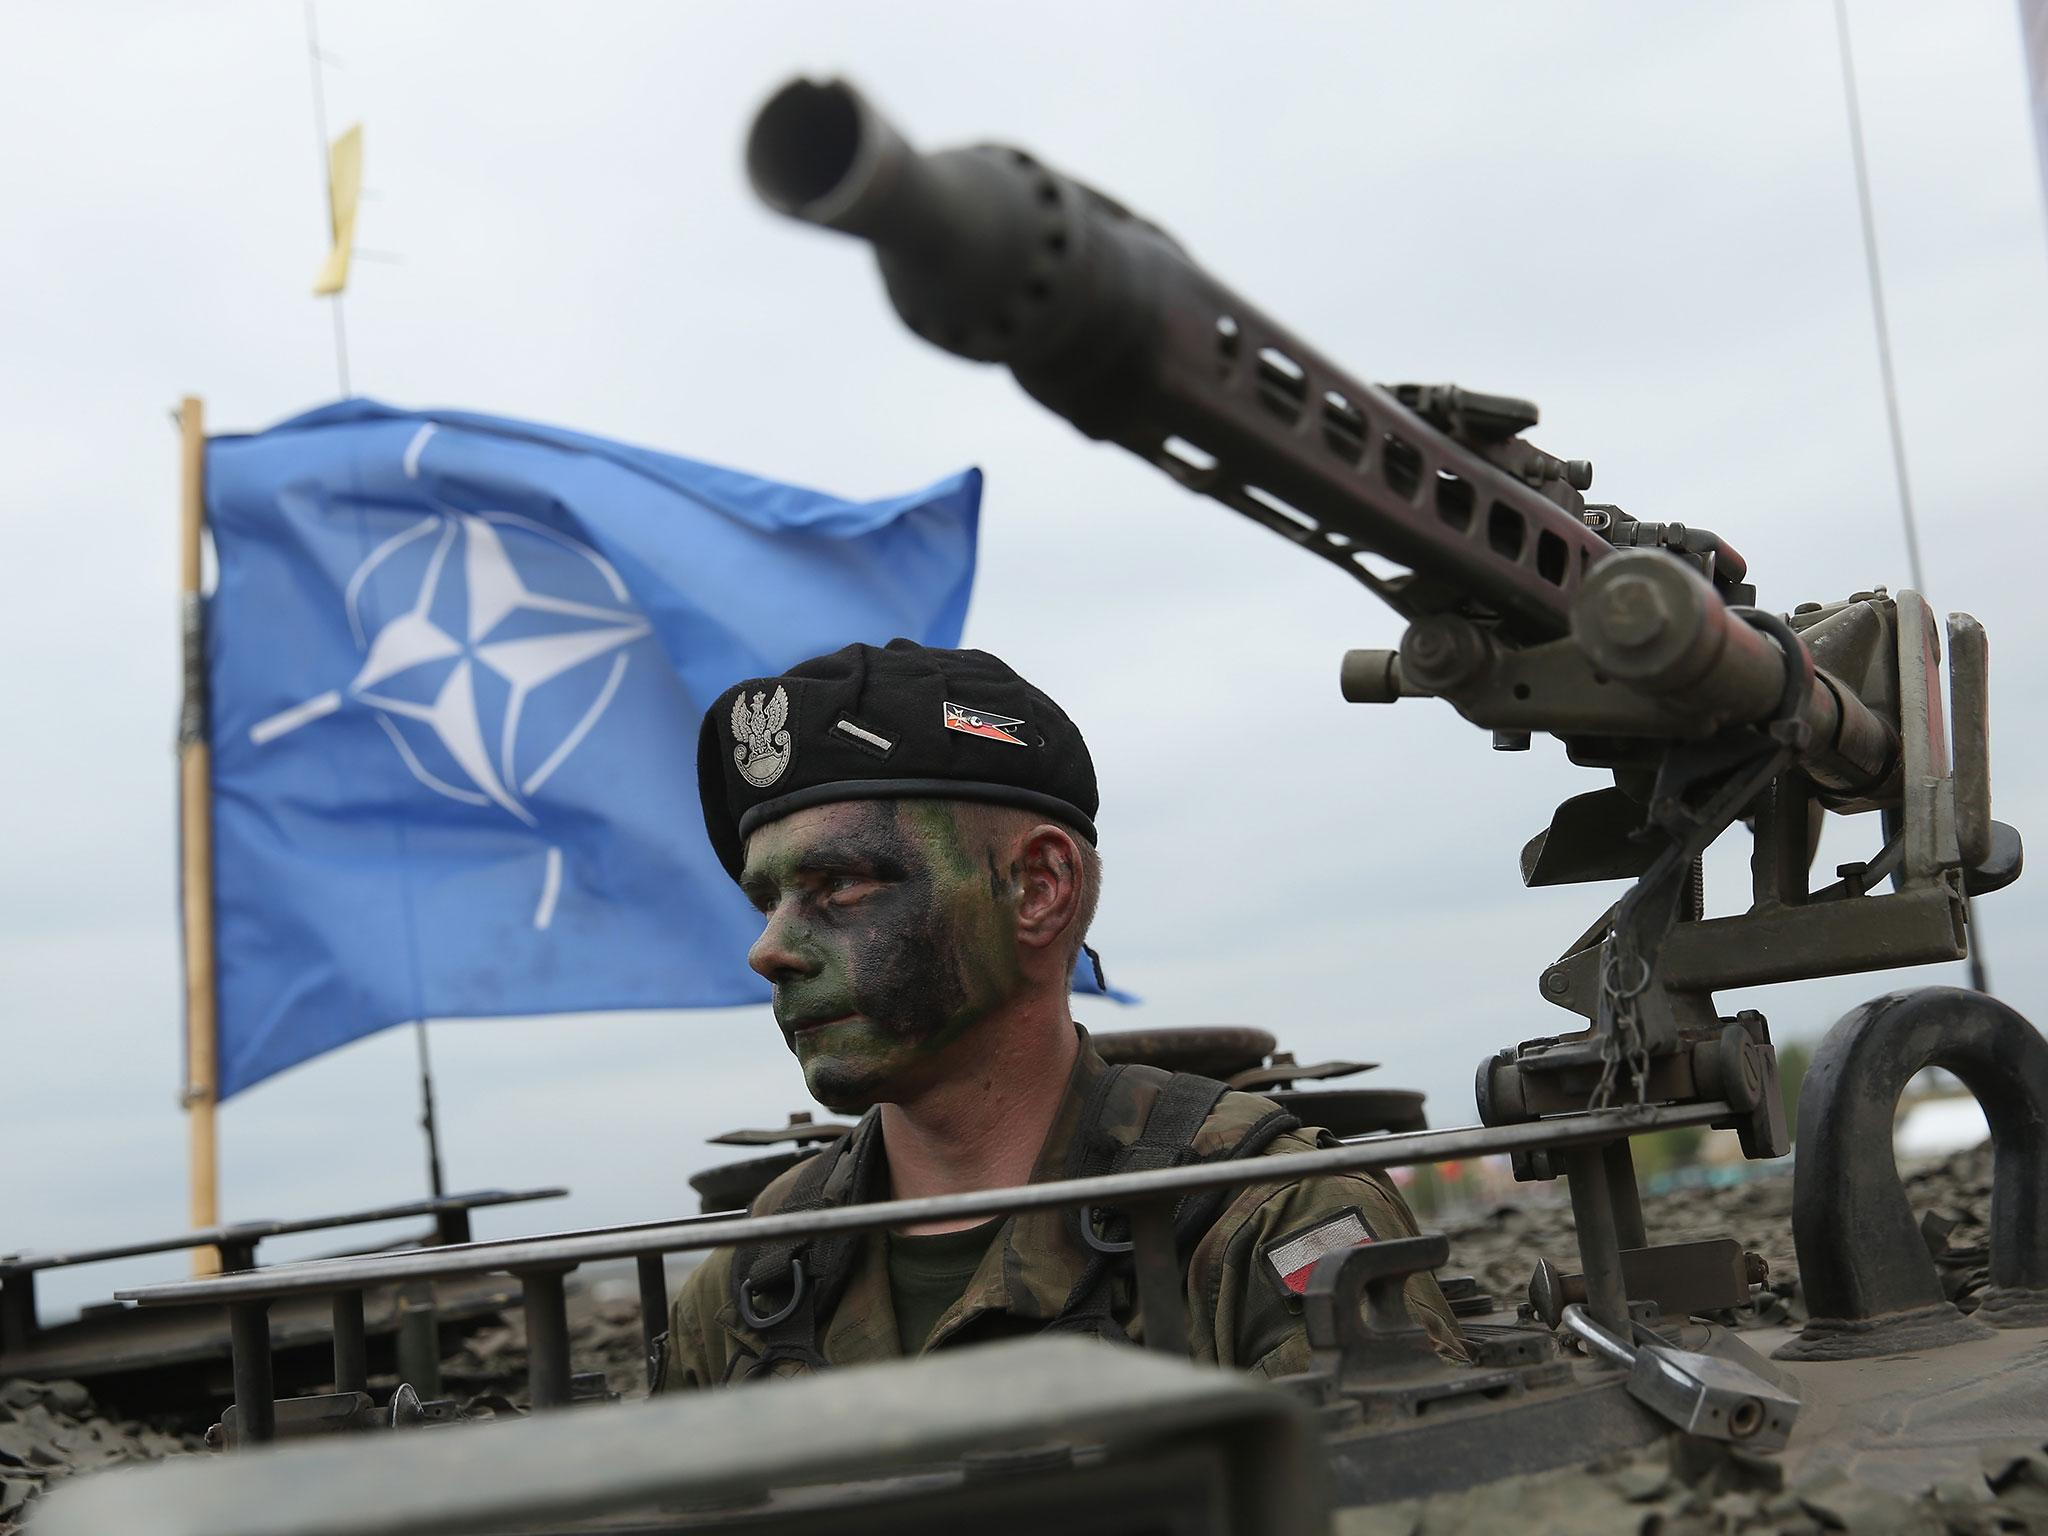 Russia Could Invade Poland 'overnight', Report Claims  The Independent